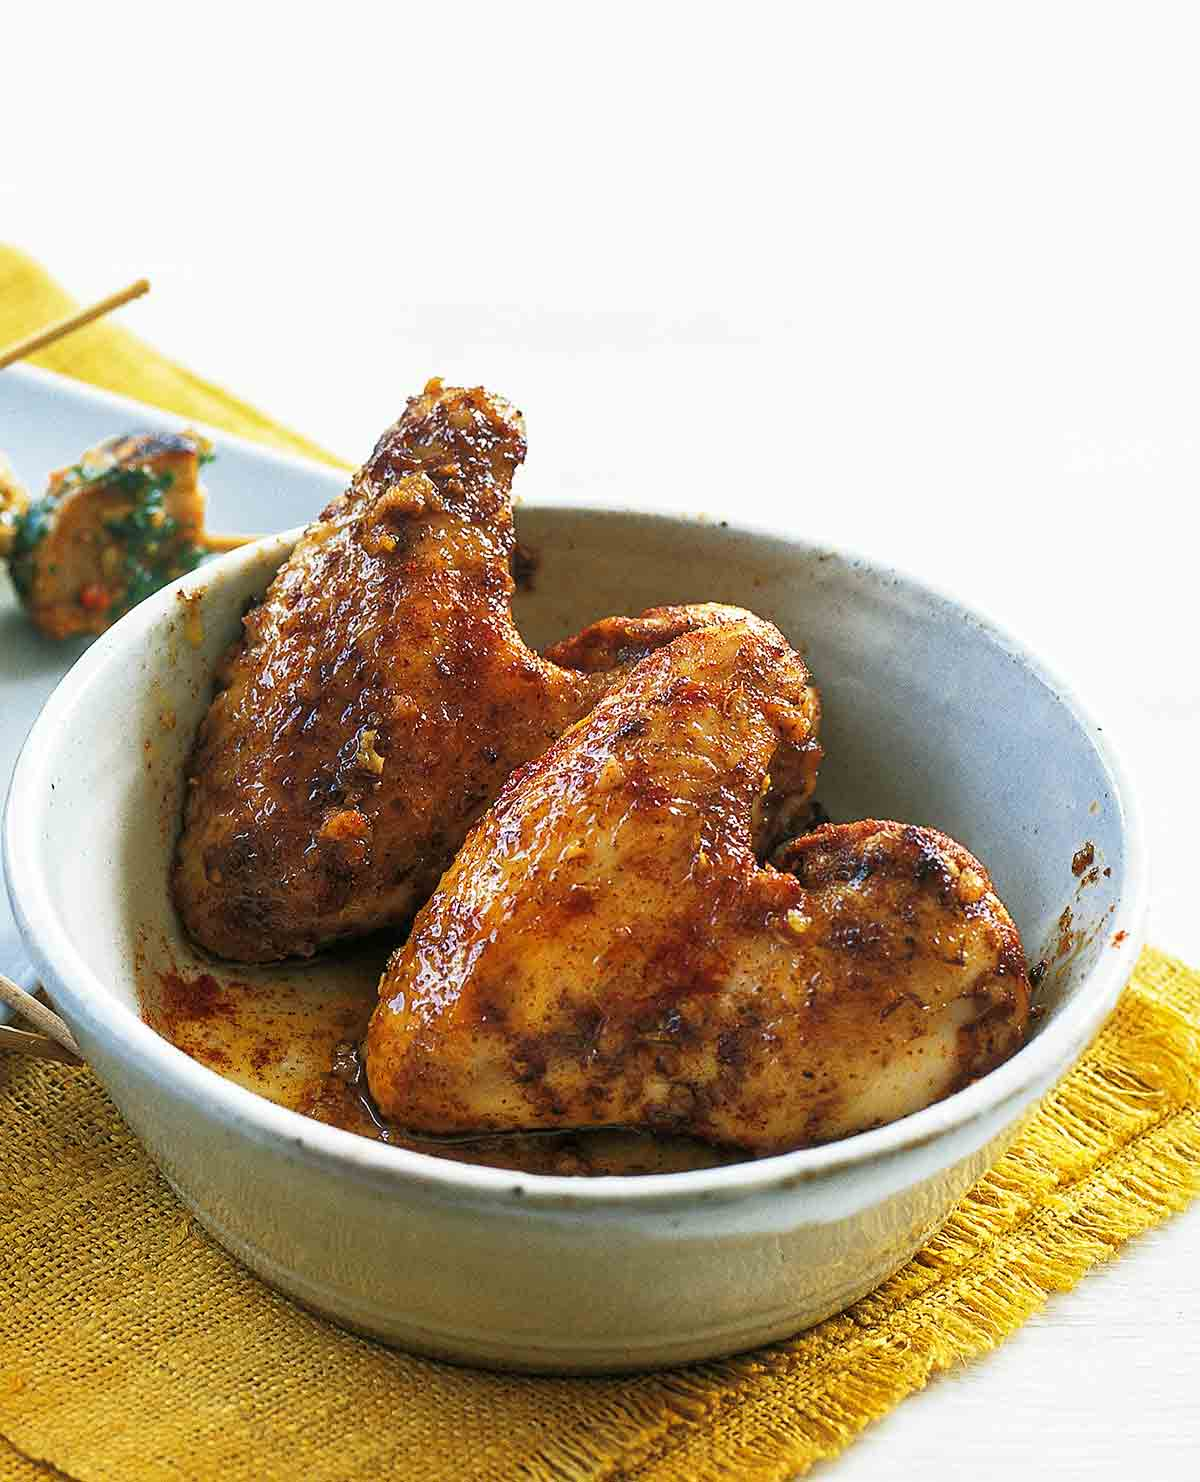 A white bowl with two chicken wings with garlic and paprika on a yellow placemat.